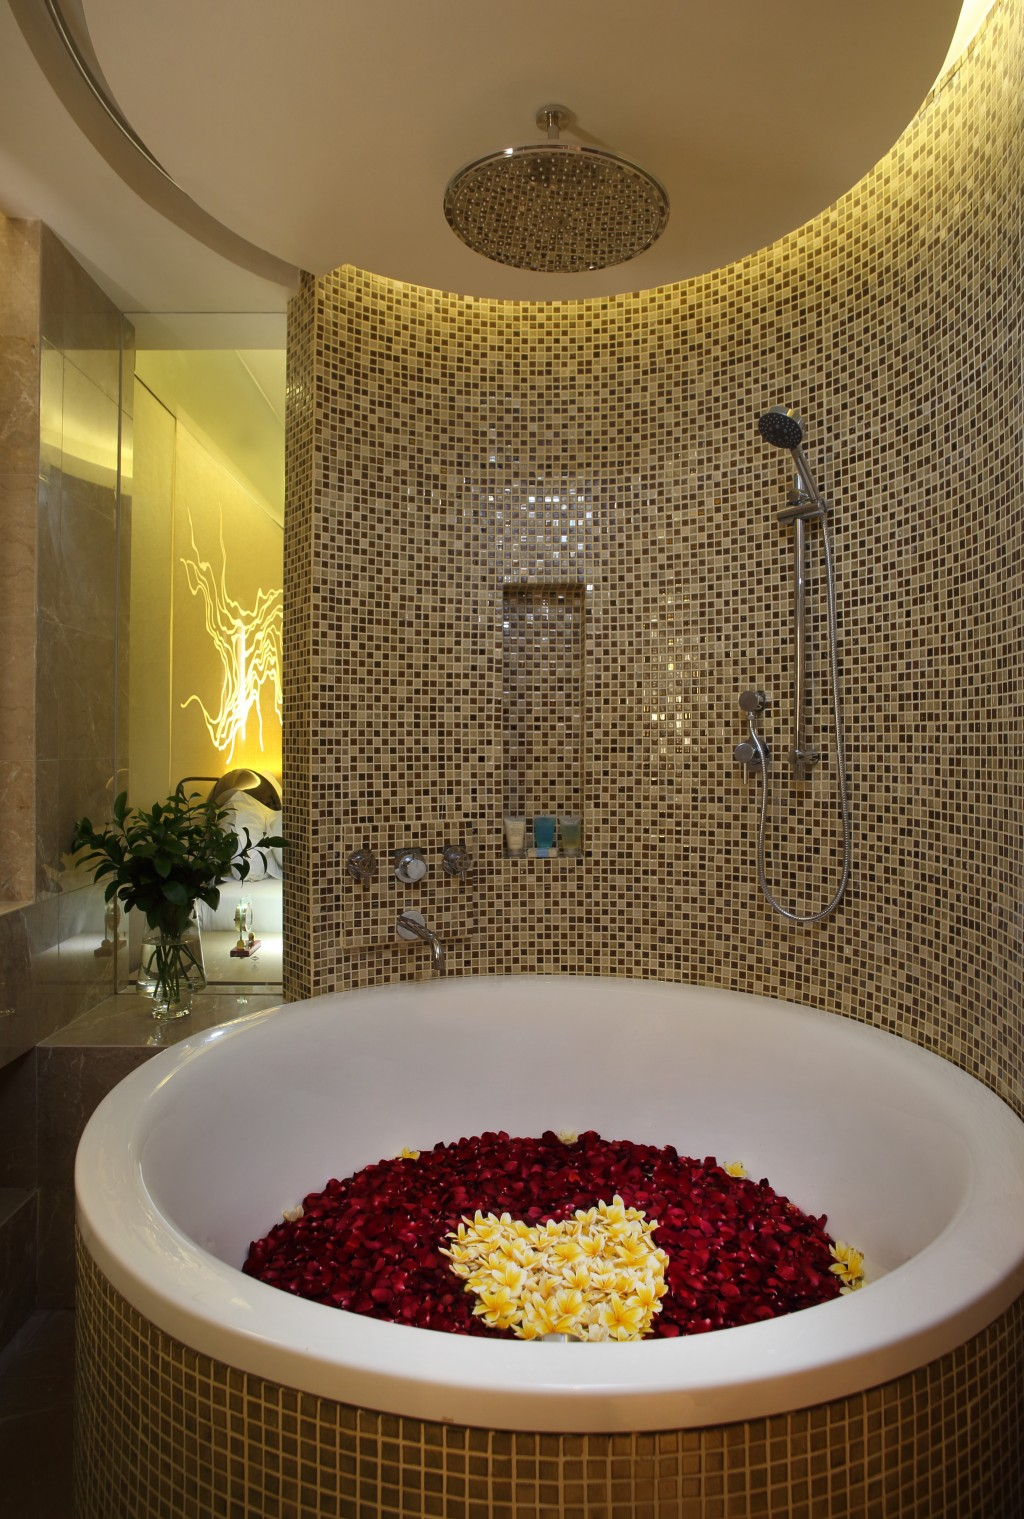 A rose-filled bath at the Rimba.